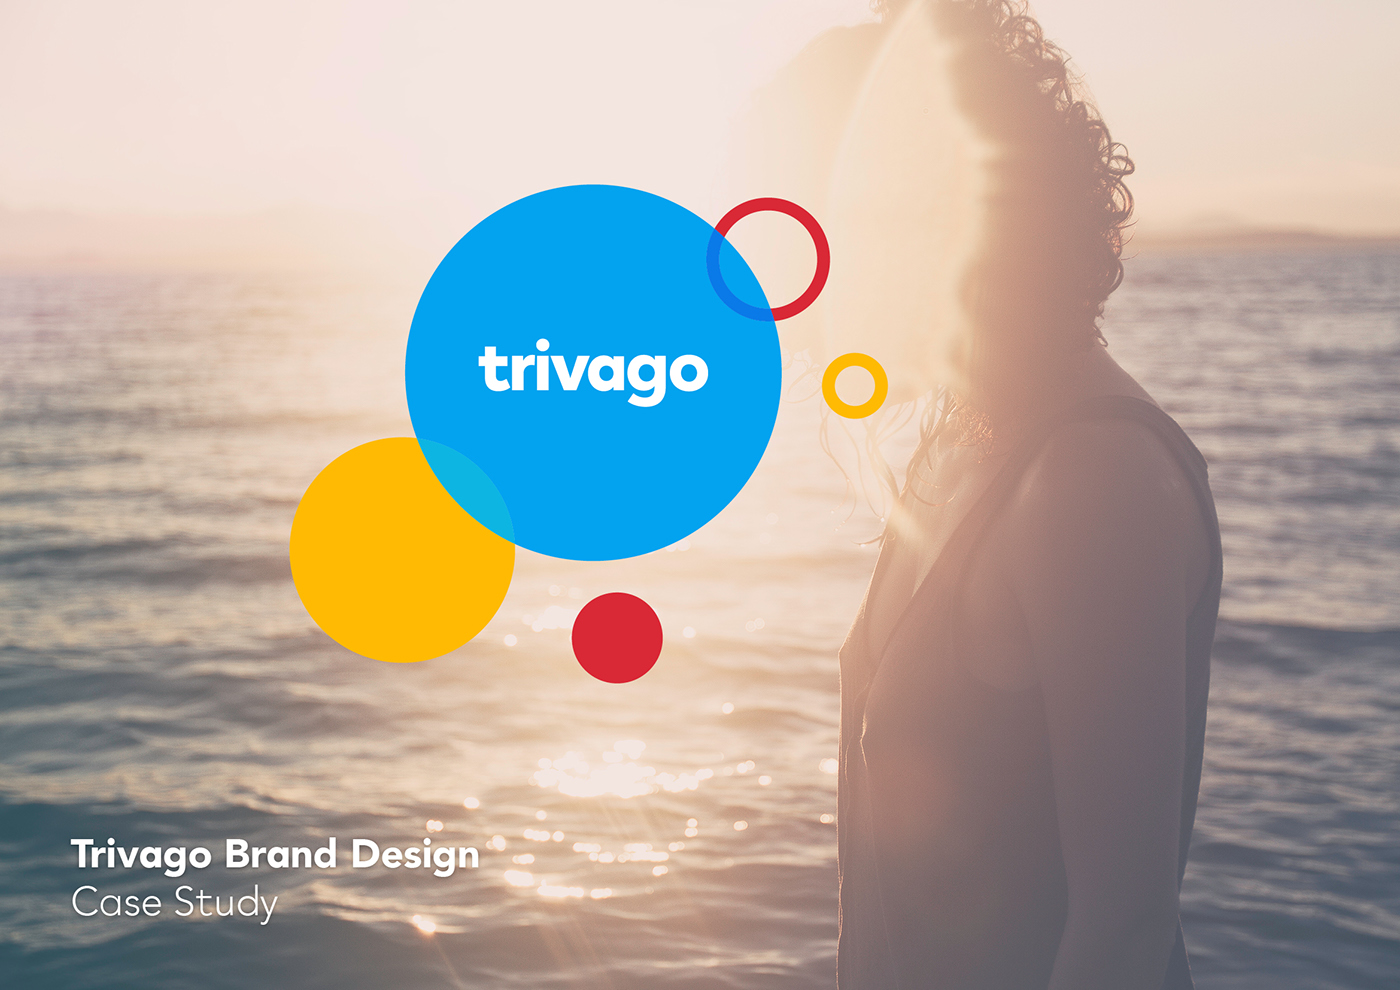 Trivago Brand Design Case Study On Behance